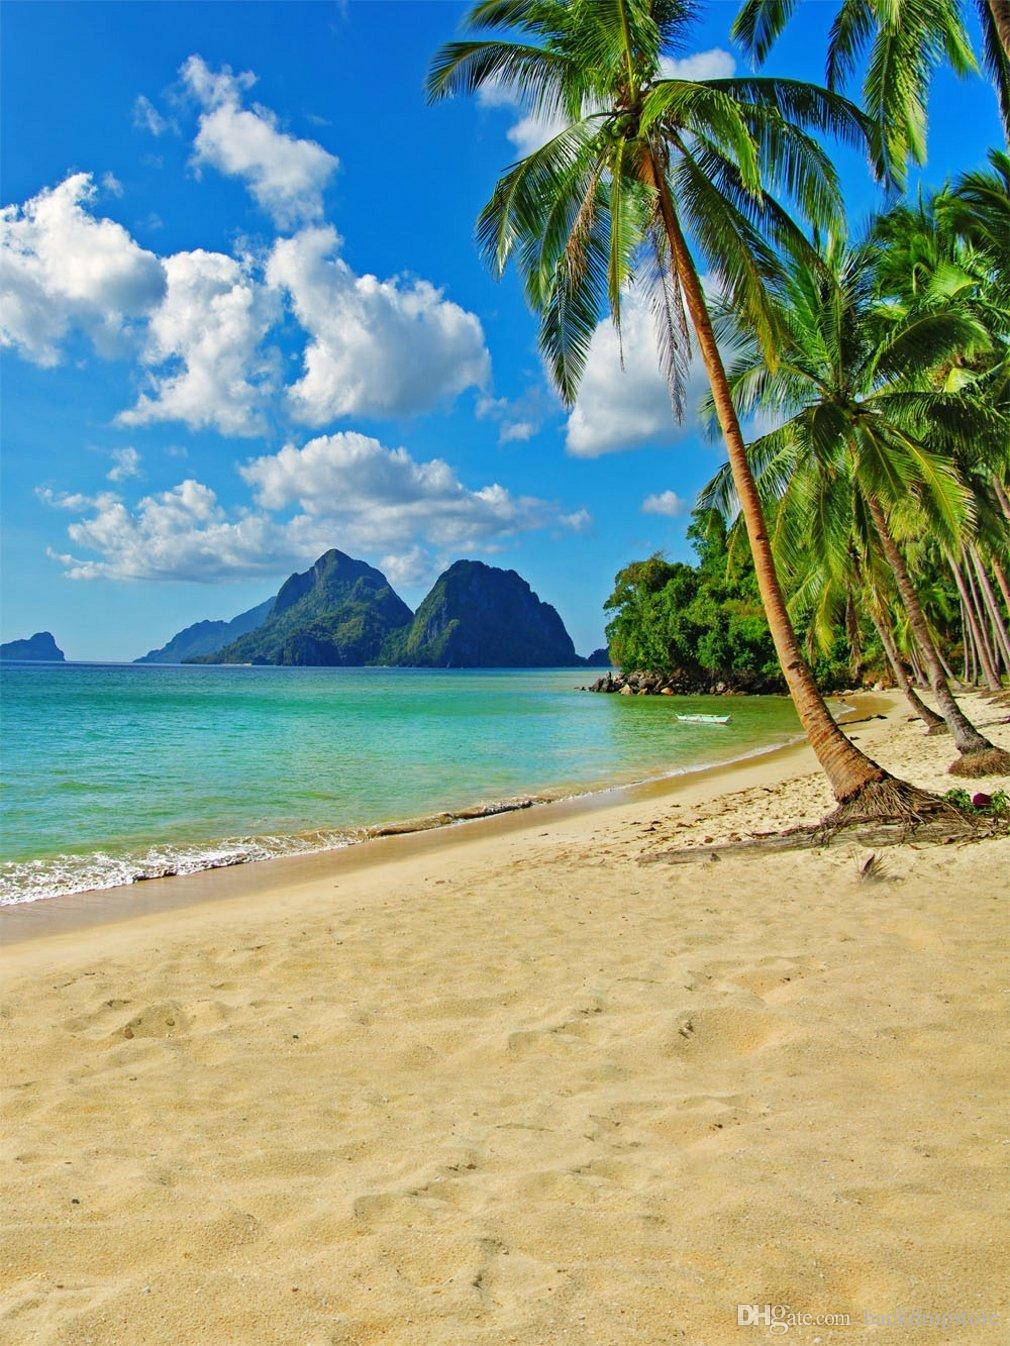 Tropical beach images 8